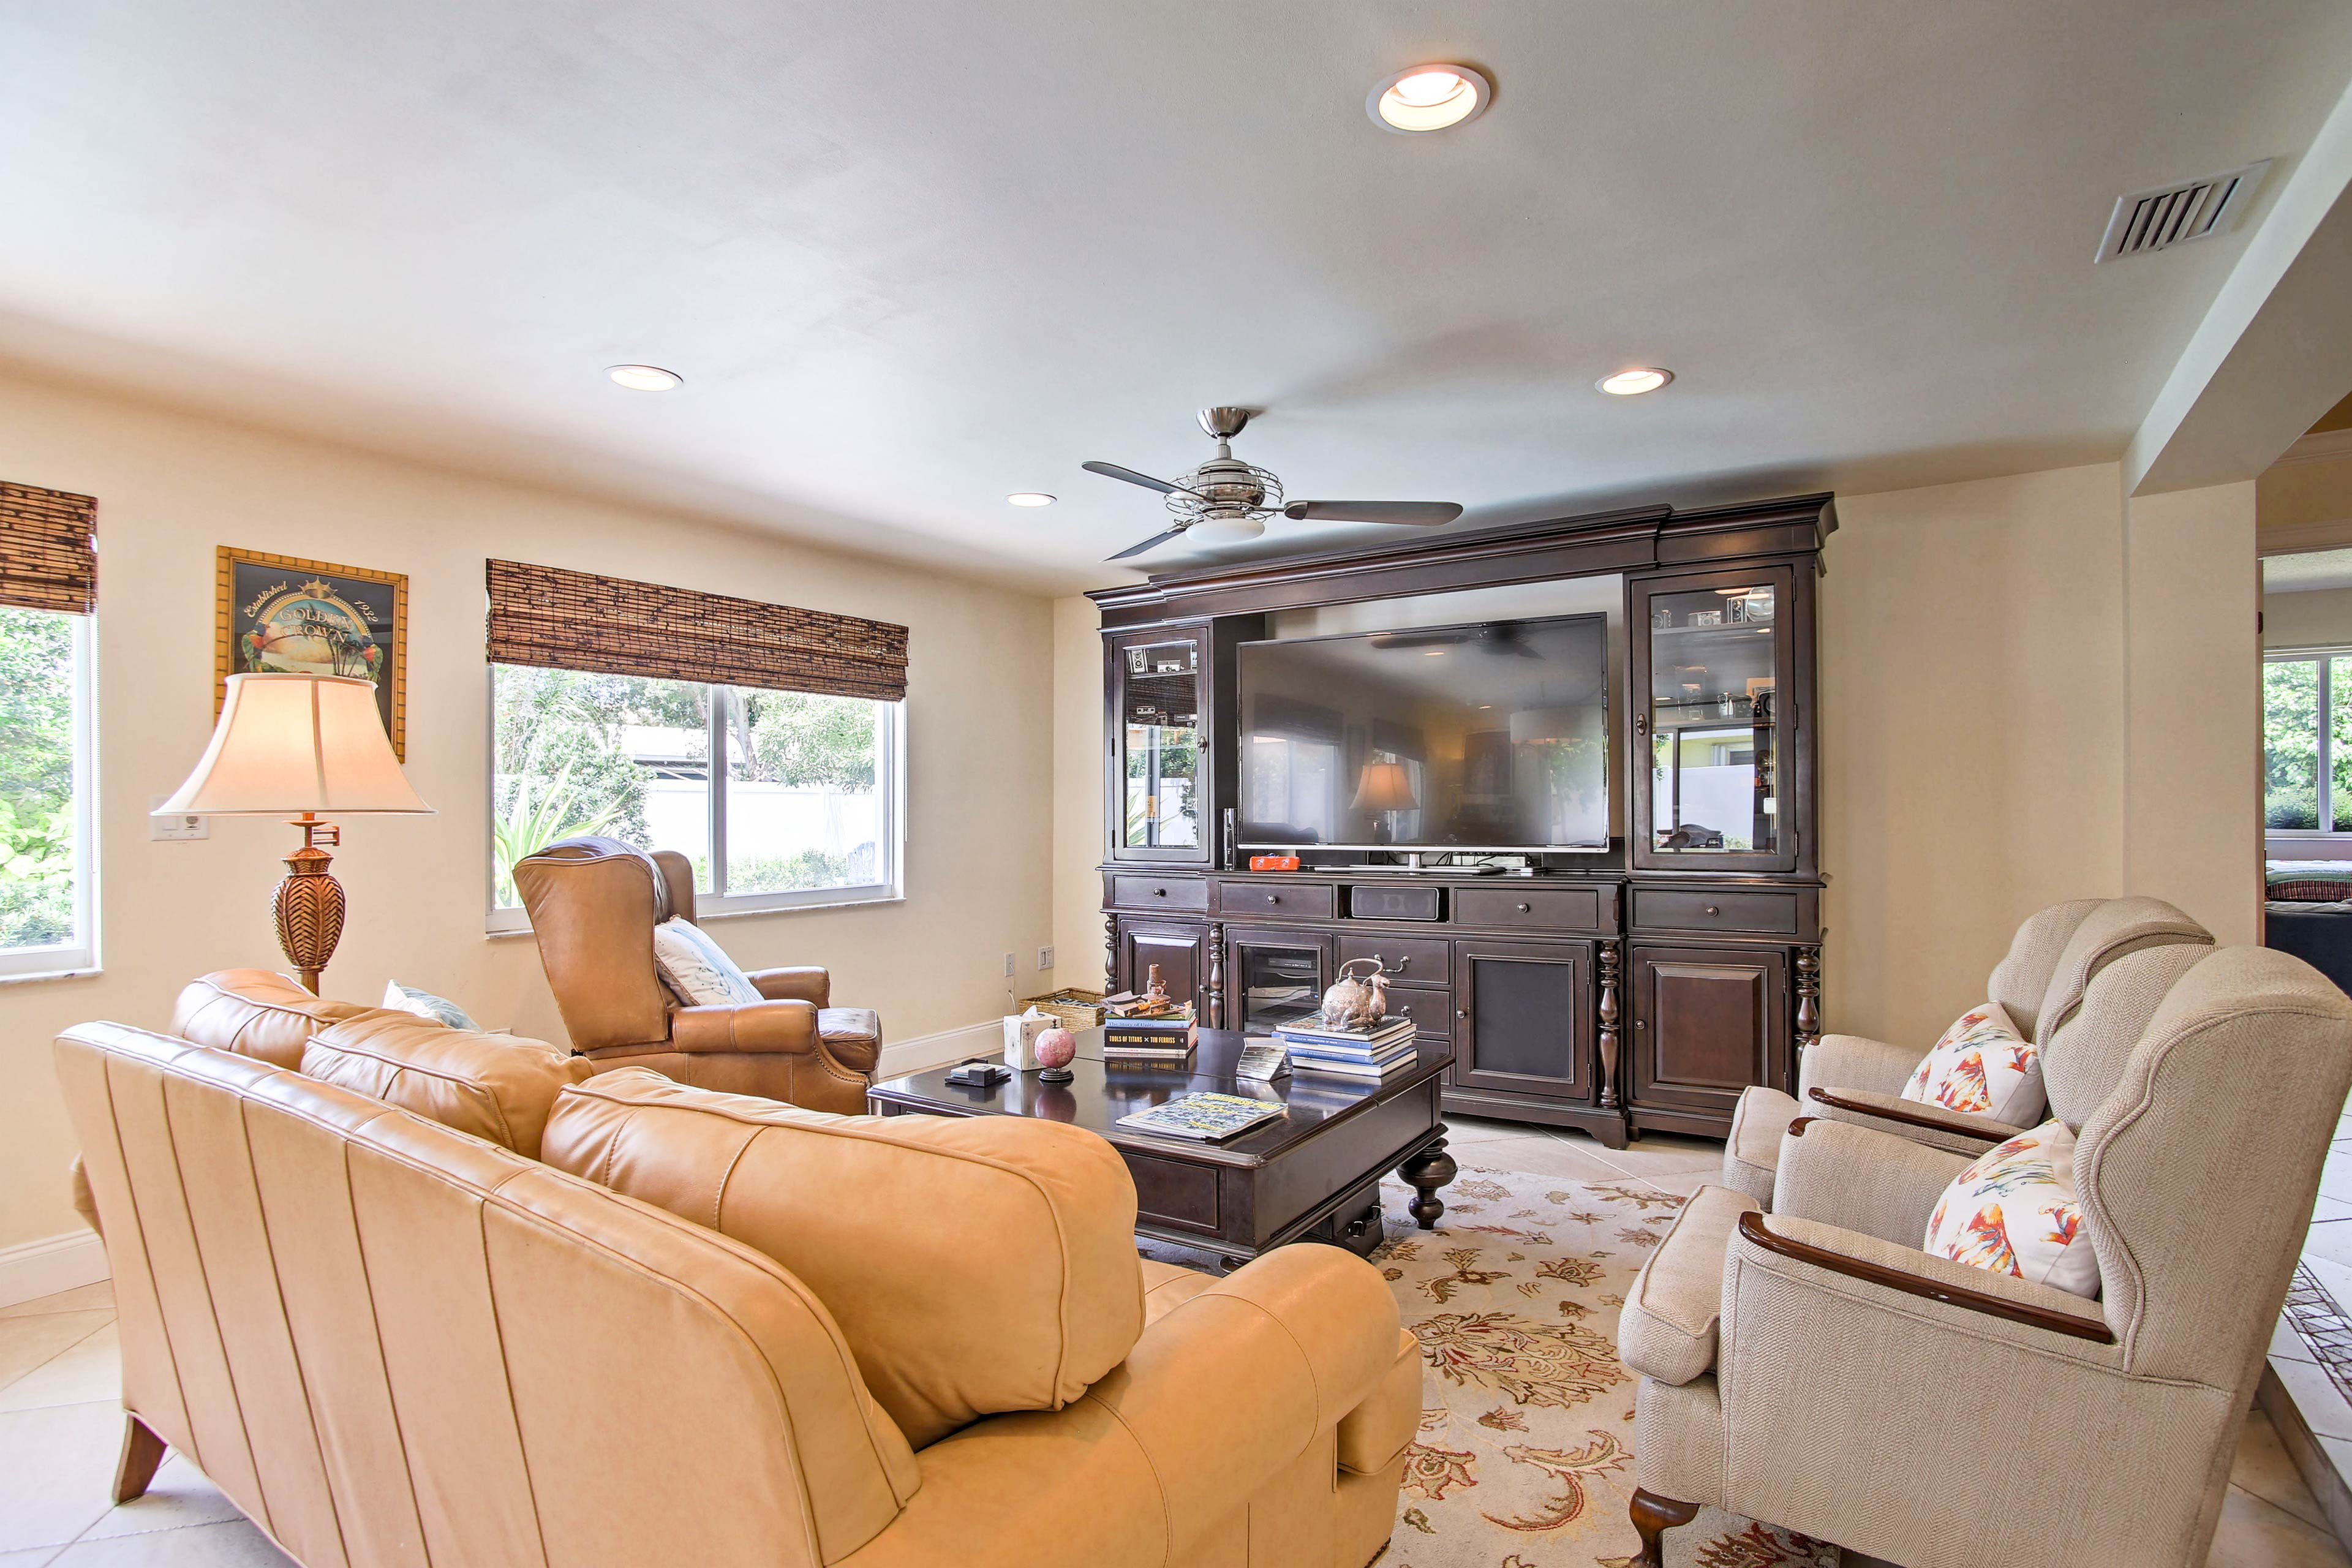 After a day on the beach, unwind in this more than cozy living room.